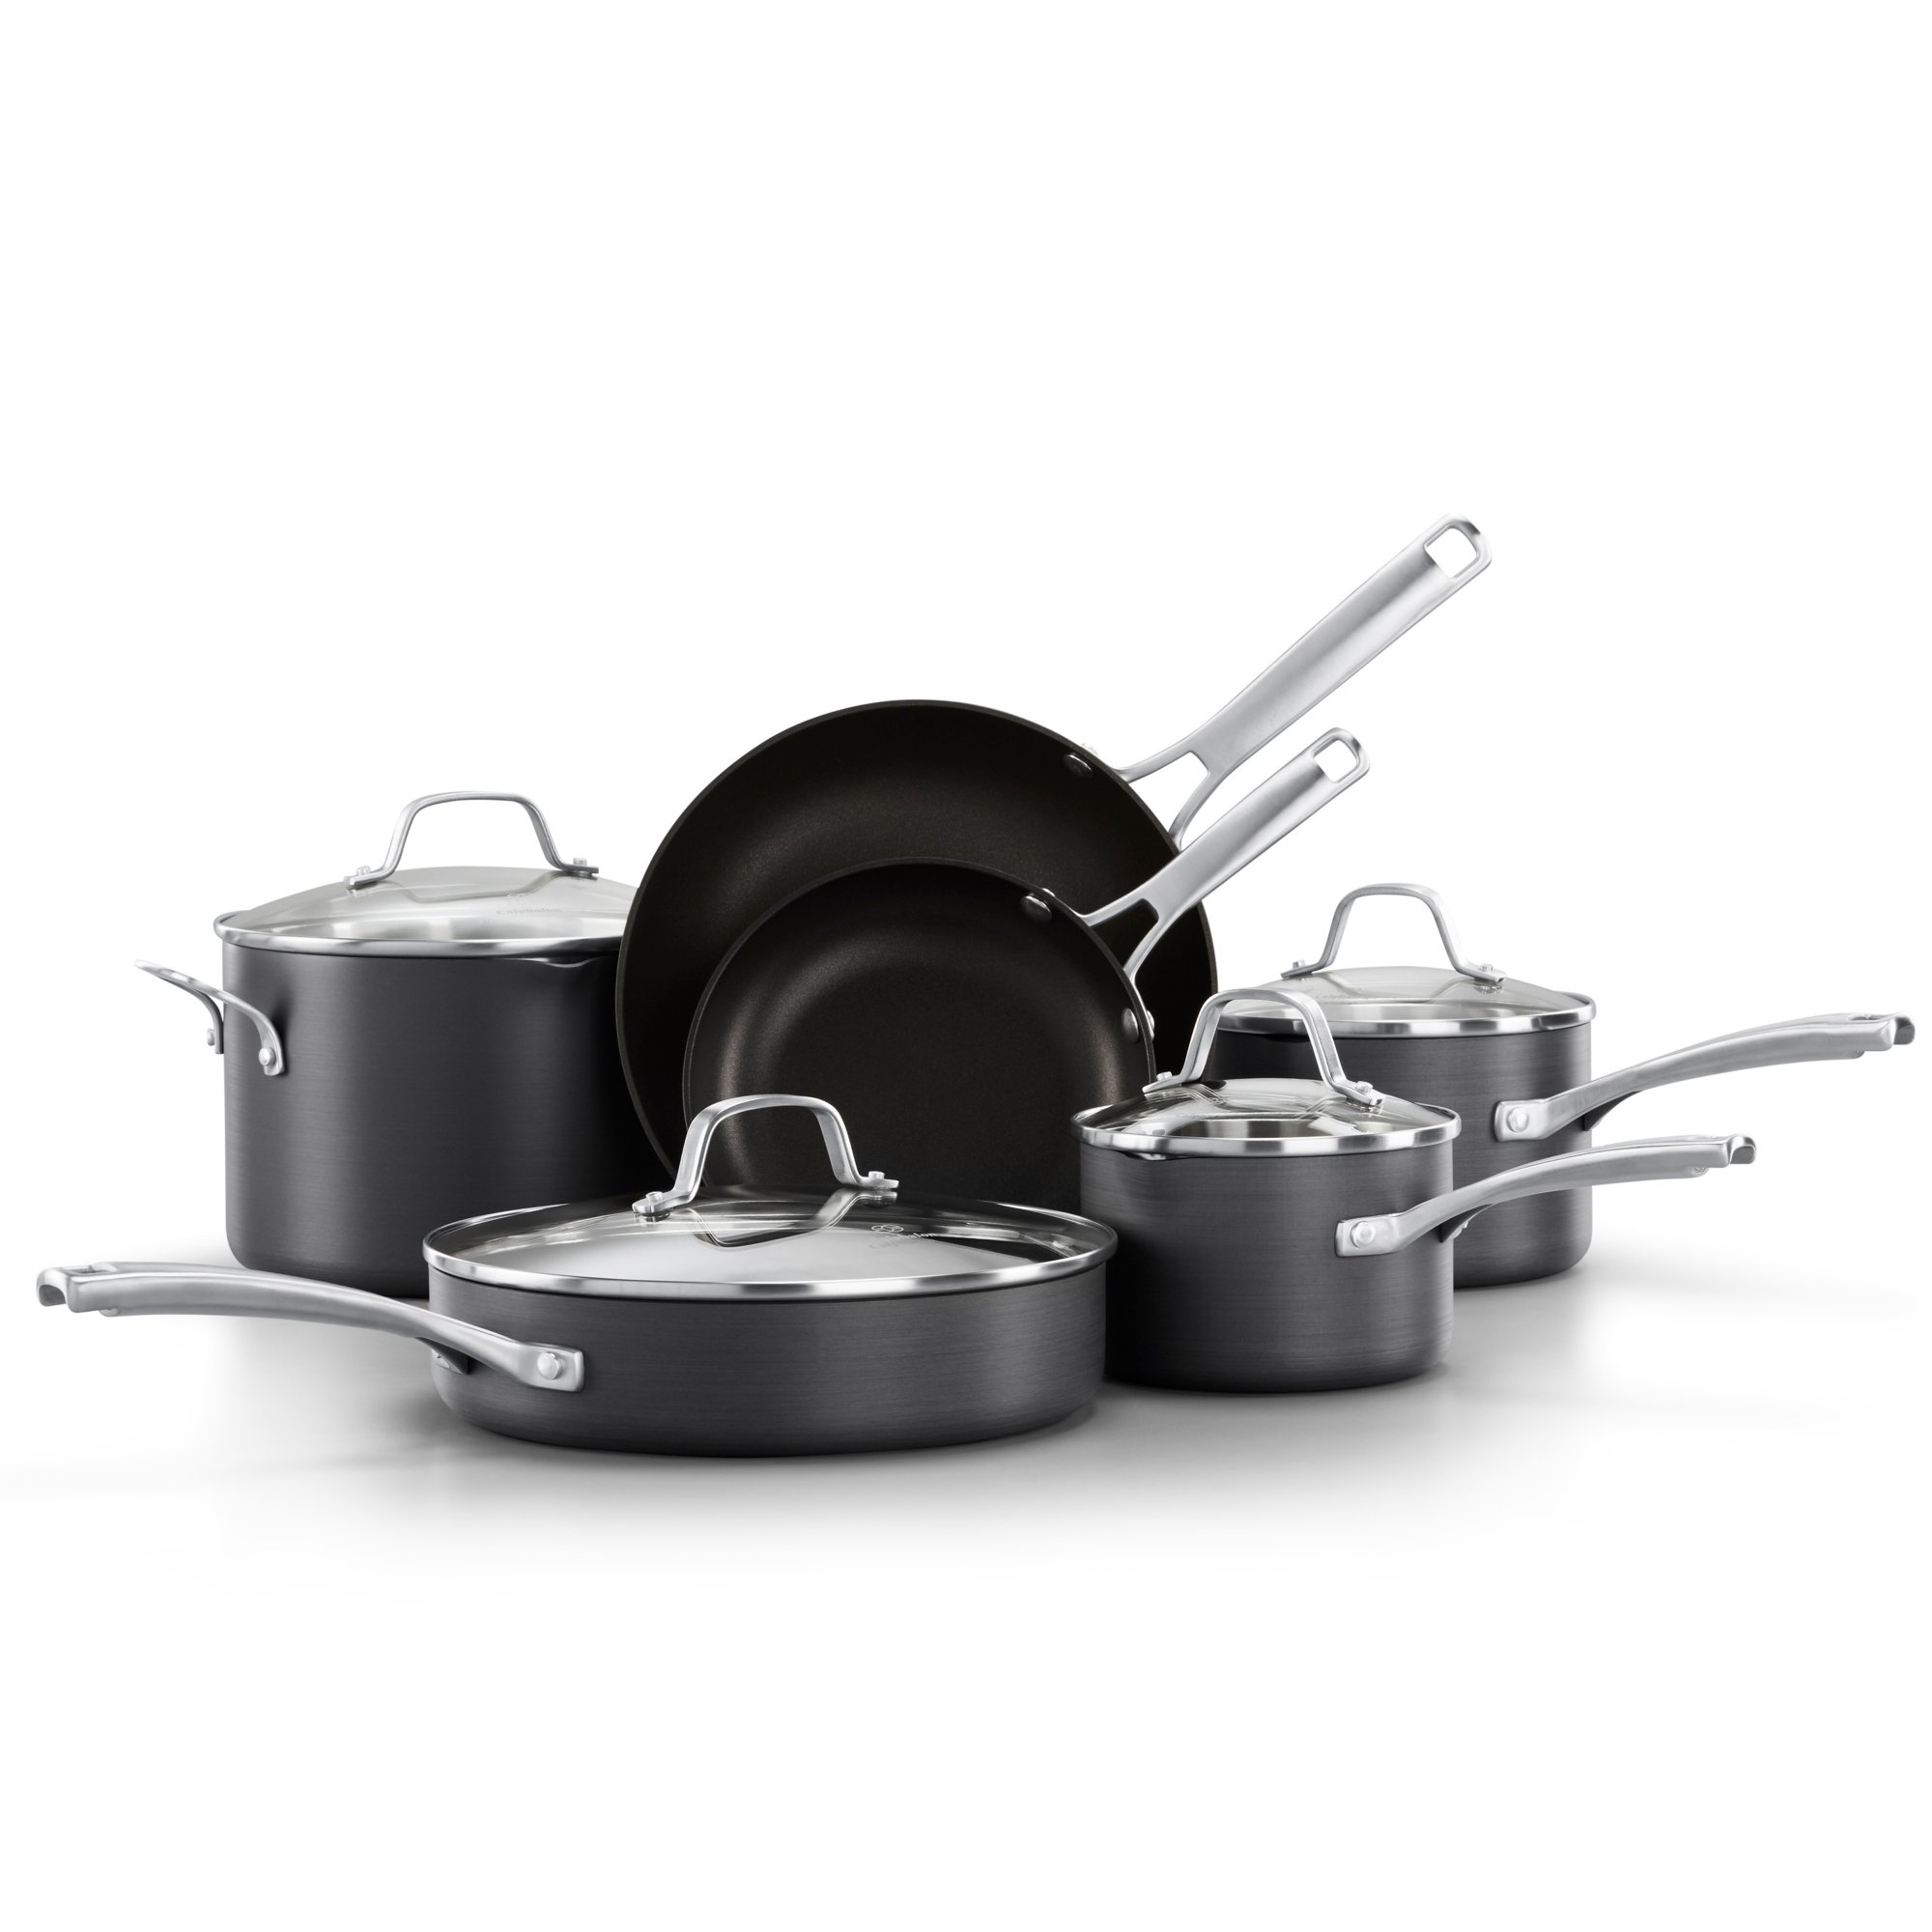 Calphalon Classic? Nonstick 10-Piece Cookware Set